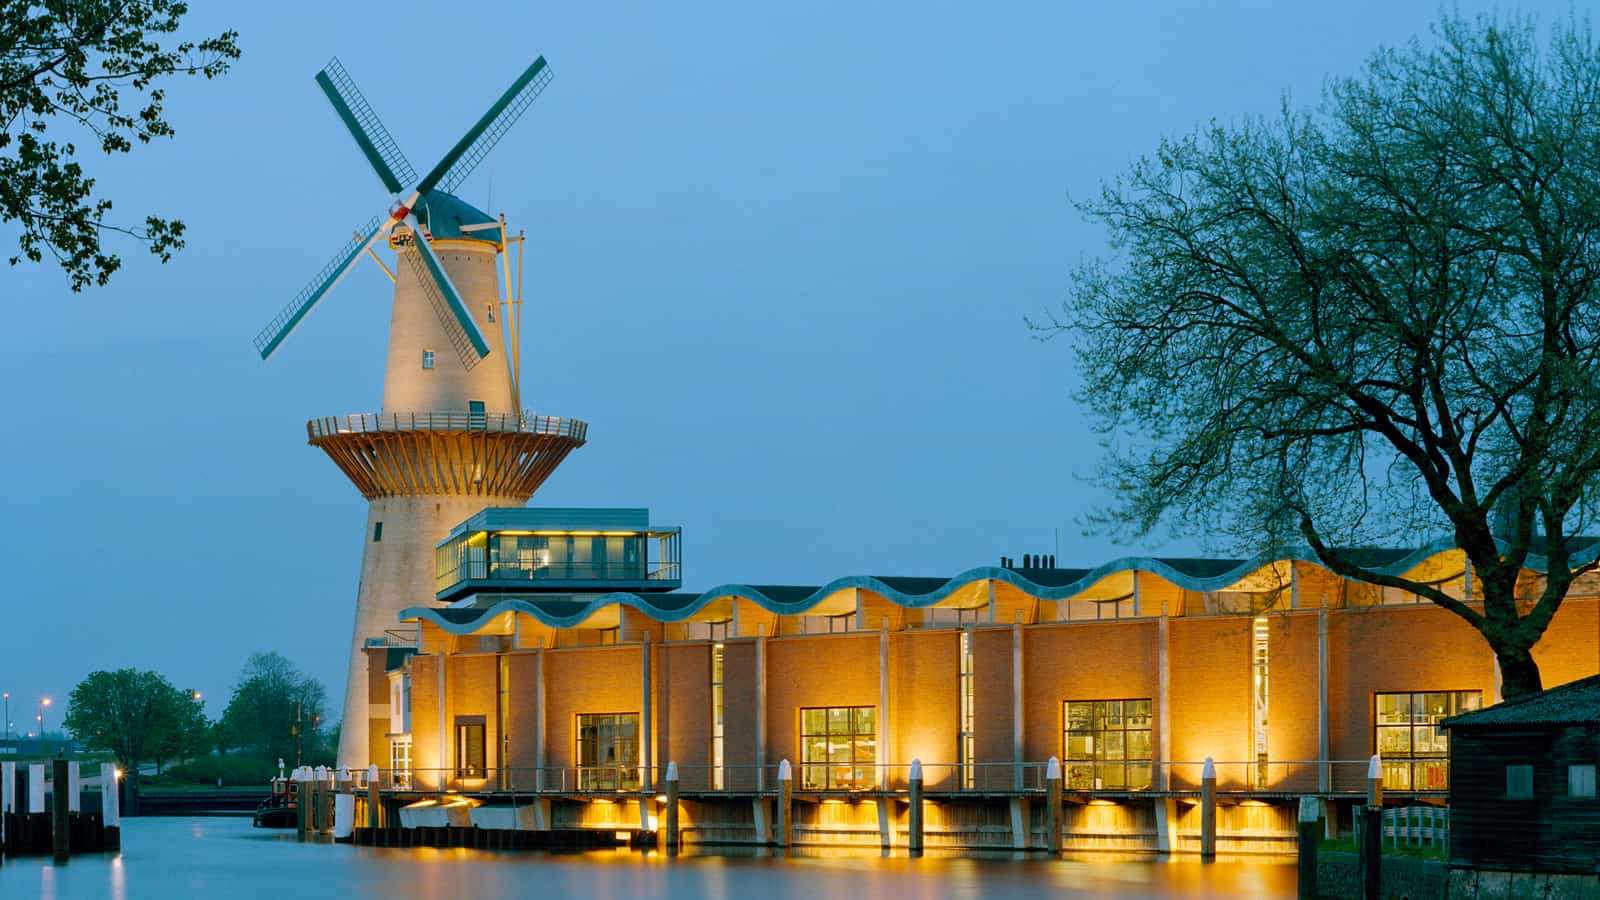 The Nolet Distillery, Schiedam, Holland